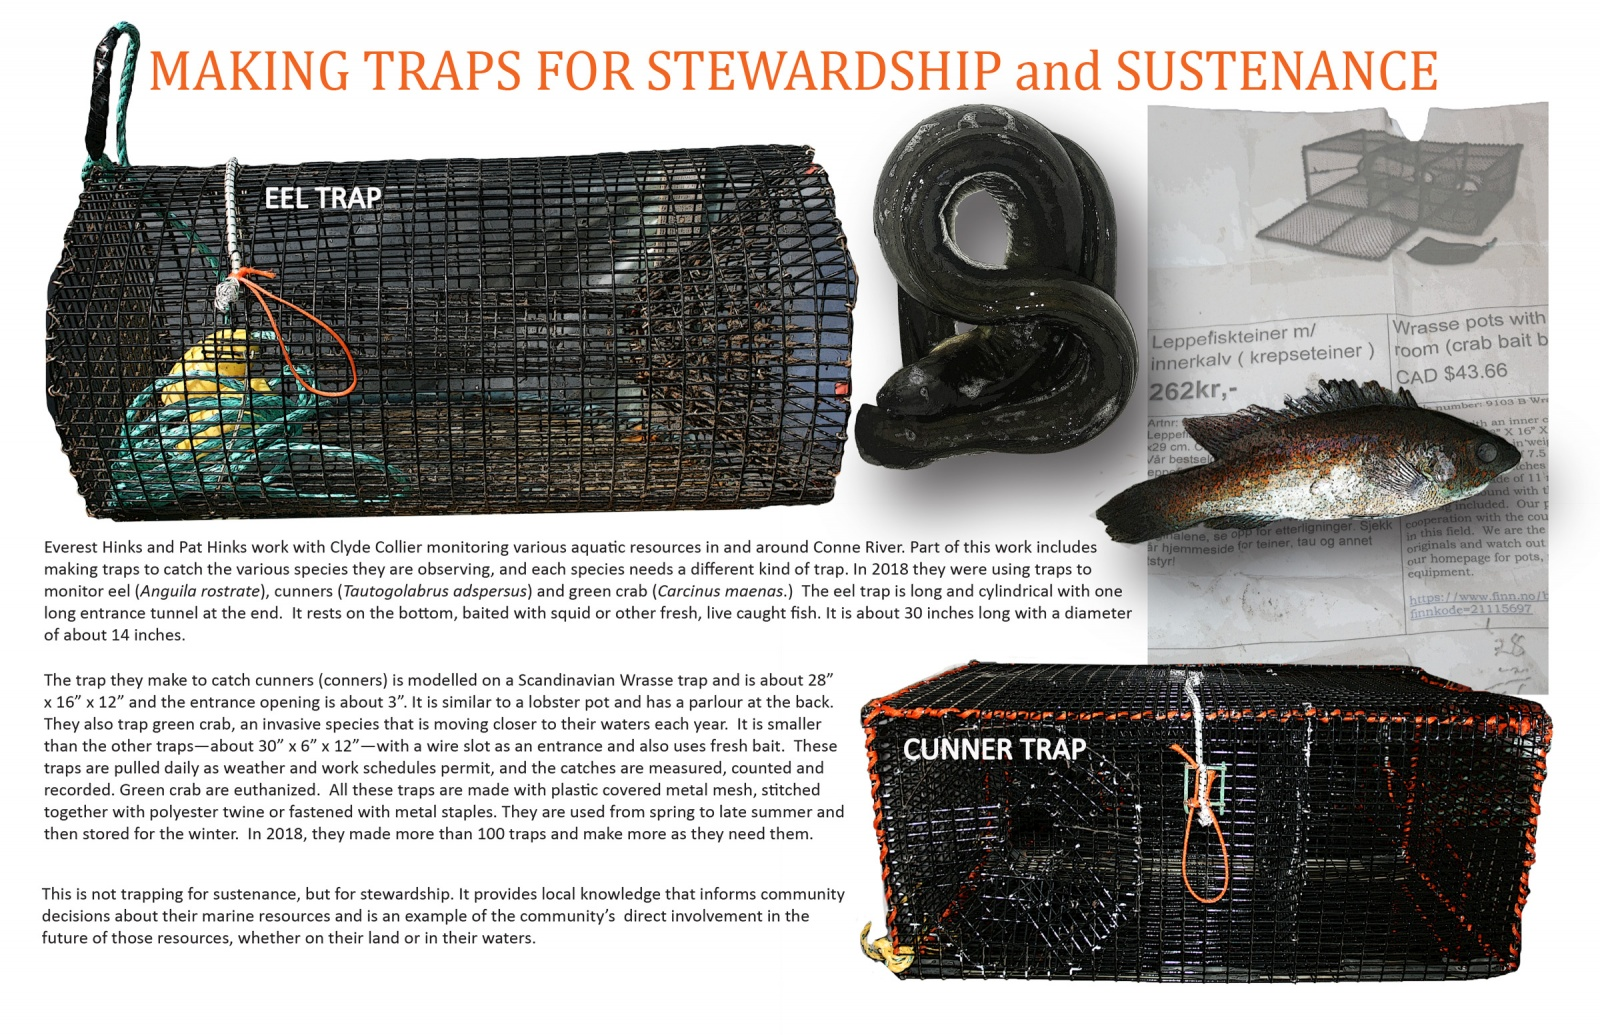 Making Traps for Stewardship and Sustenance